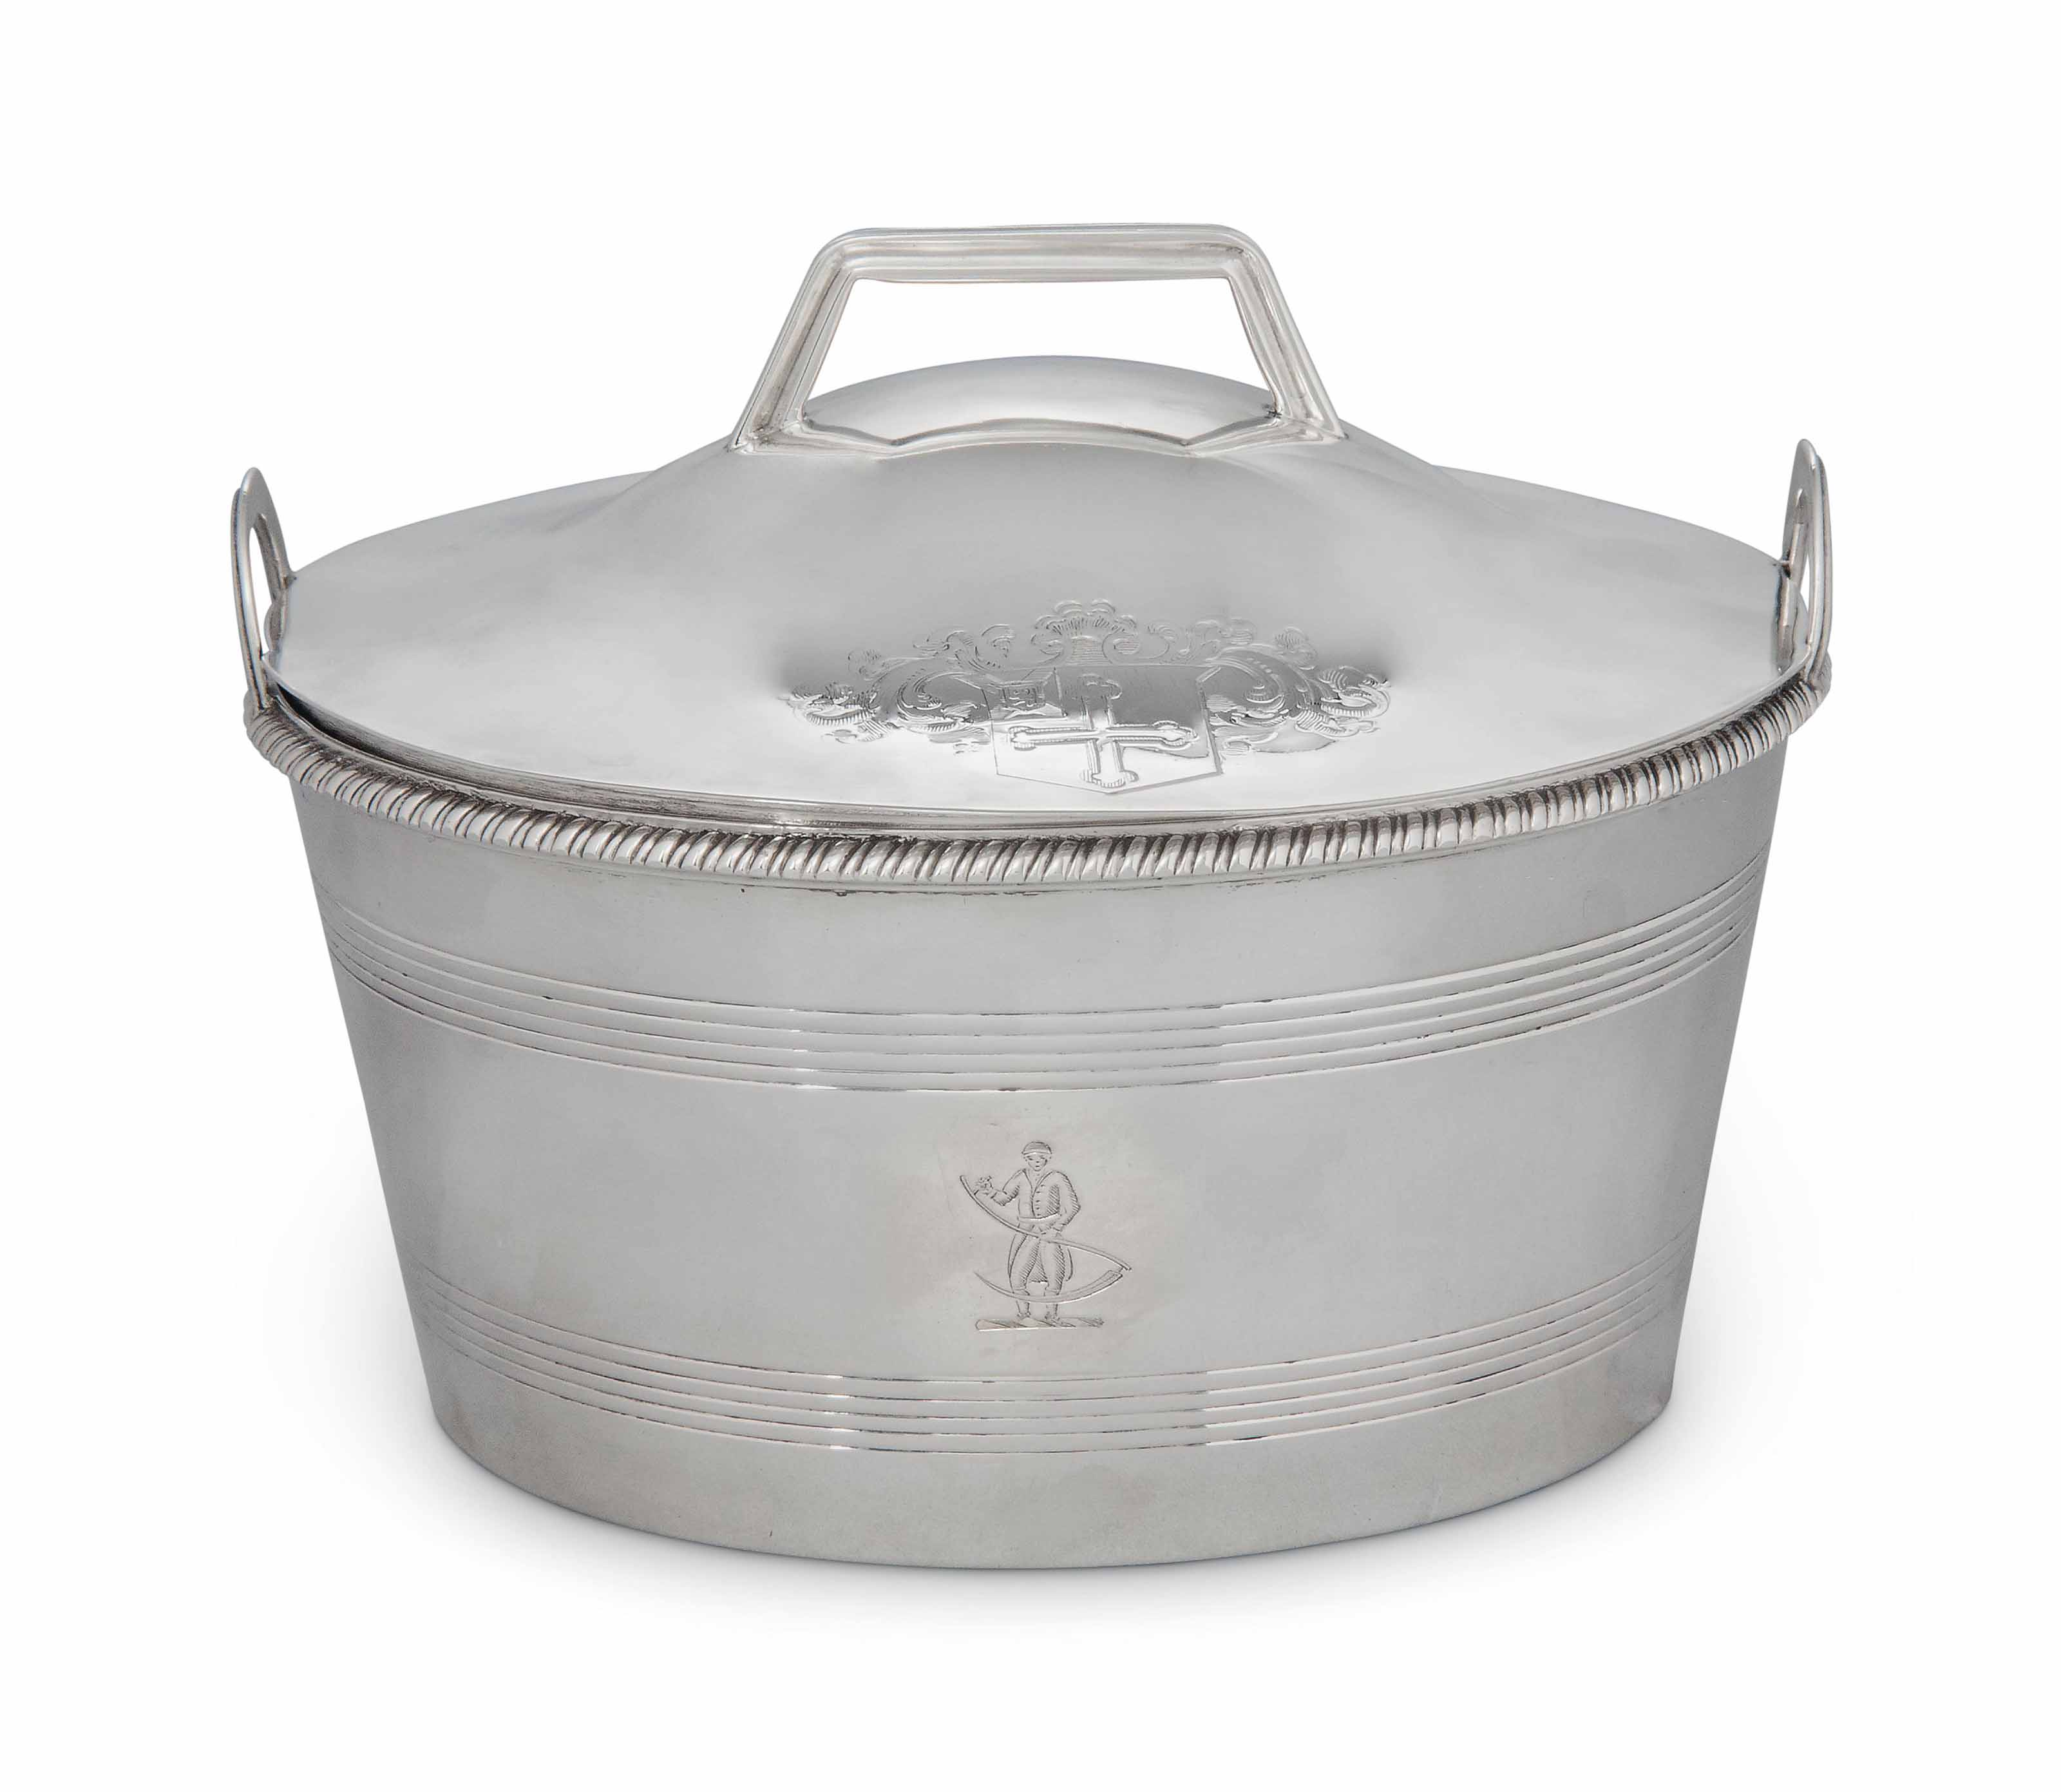 A GEORGE III SILVER BUTTER DISH IN THE FORM OF A CHURN